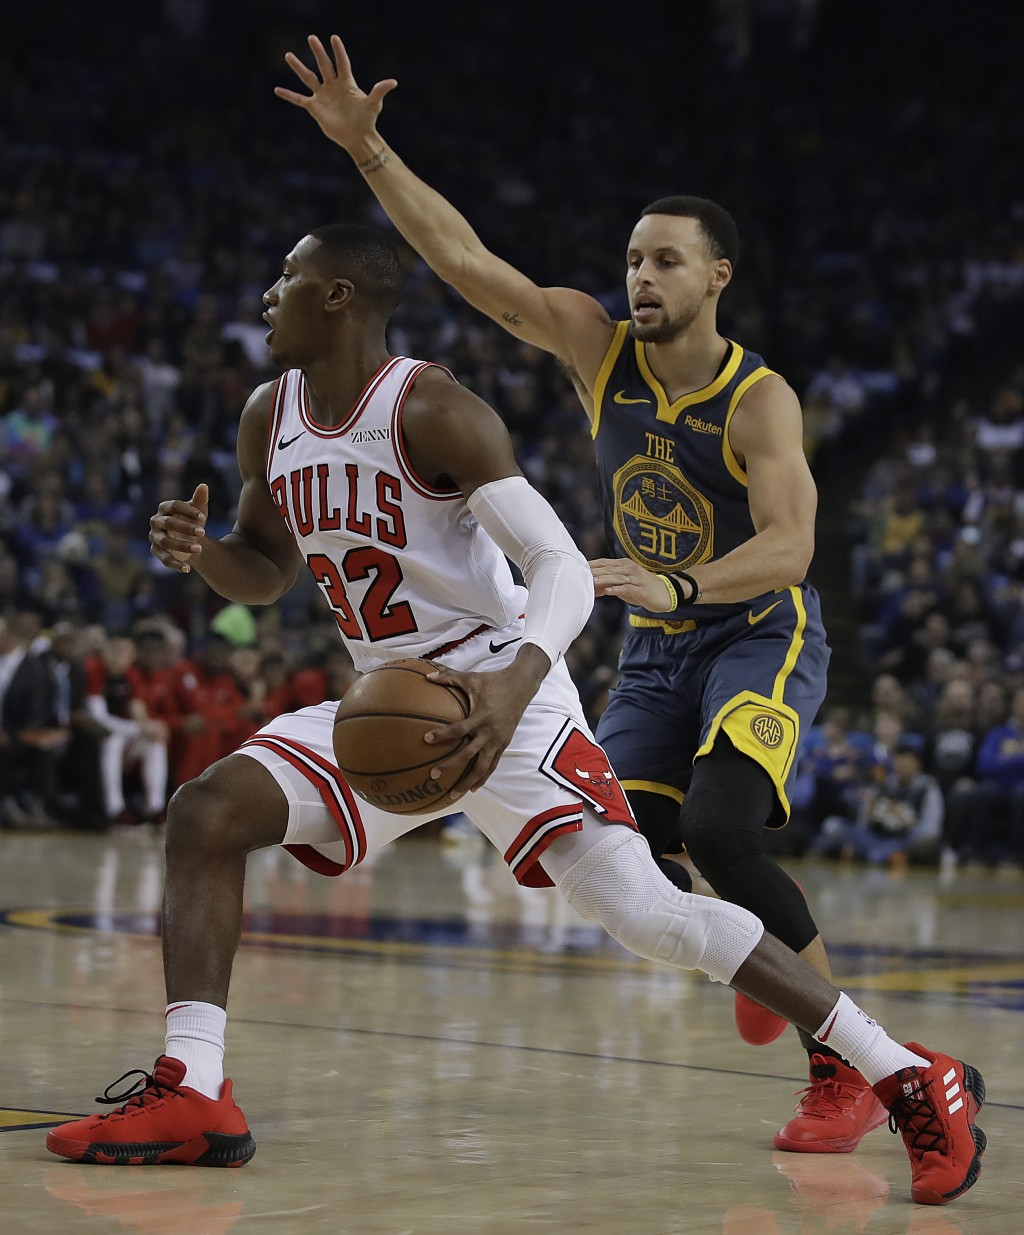 Golden State Warriors' Stephen Curry, right, guards Chicago Bulls' Kris Dunn during the first half of an NBA basketball game Friday, Jan. 11, 2019, in